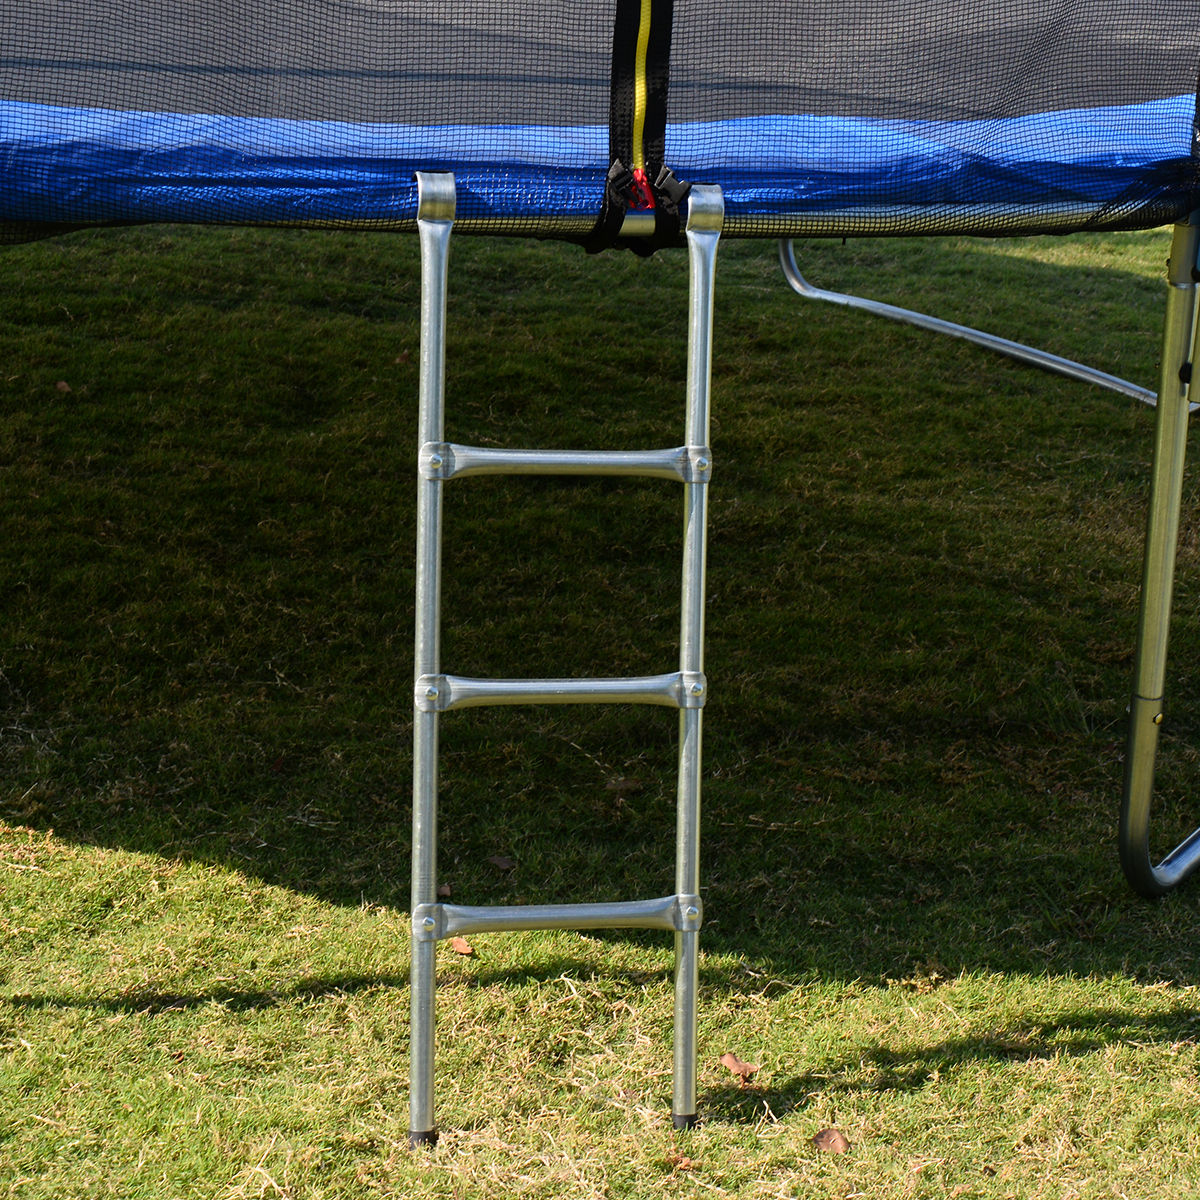 Goplus 15 Foot Trampoline, With Safety Enclosure And Ladder, Blue    Walmart.com